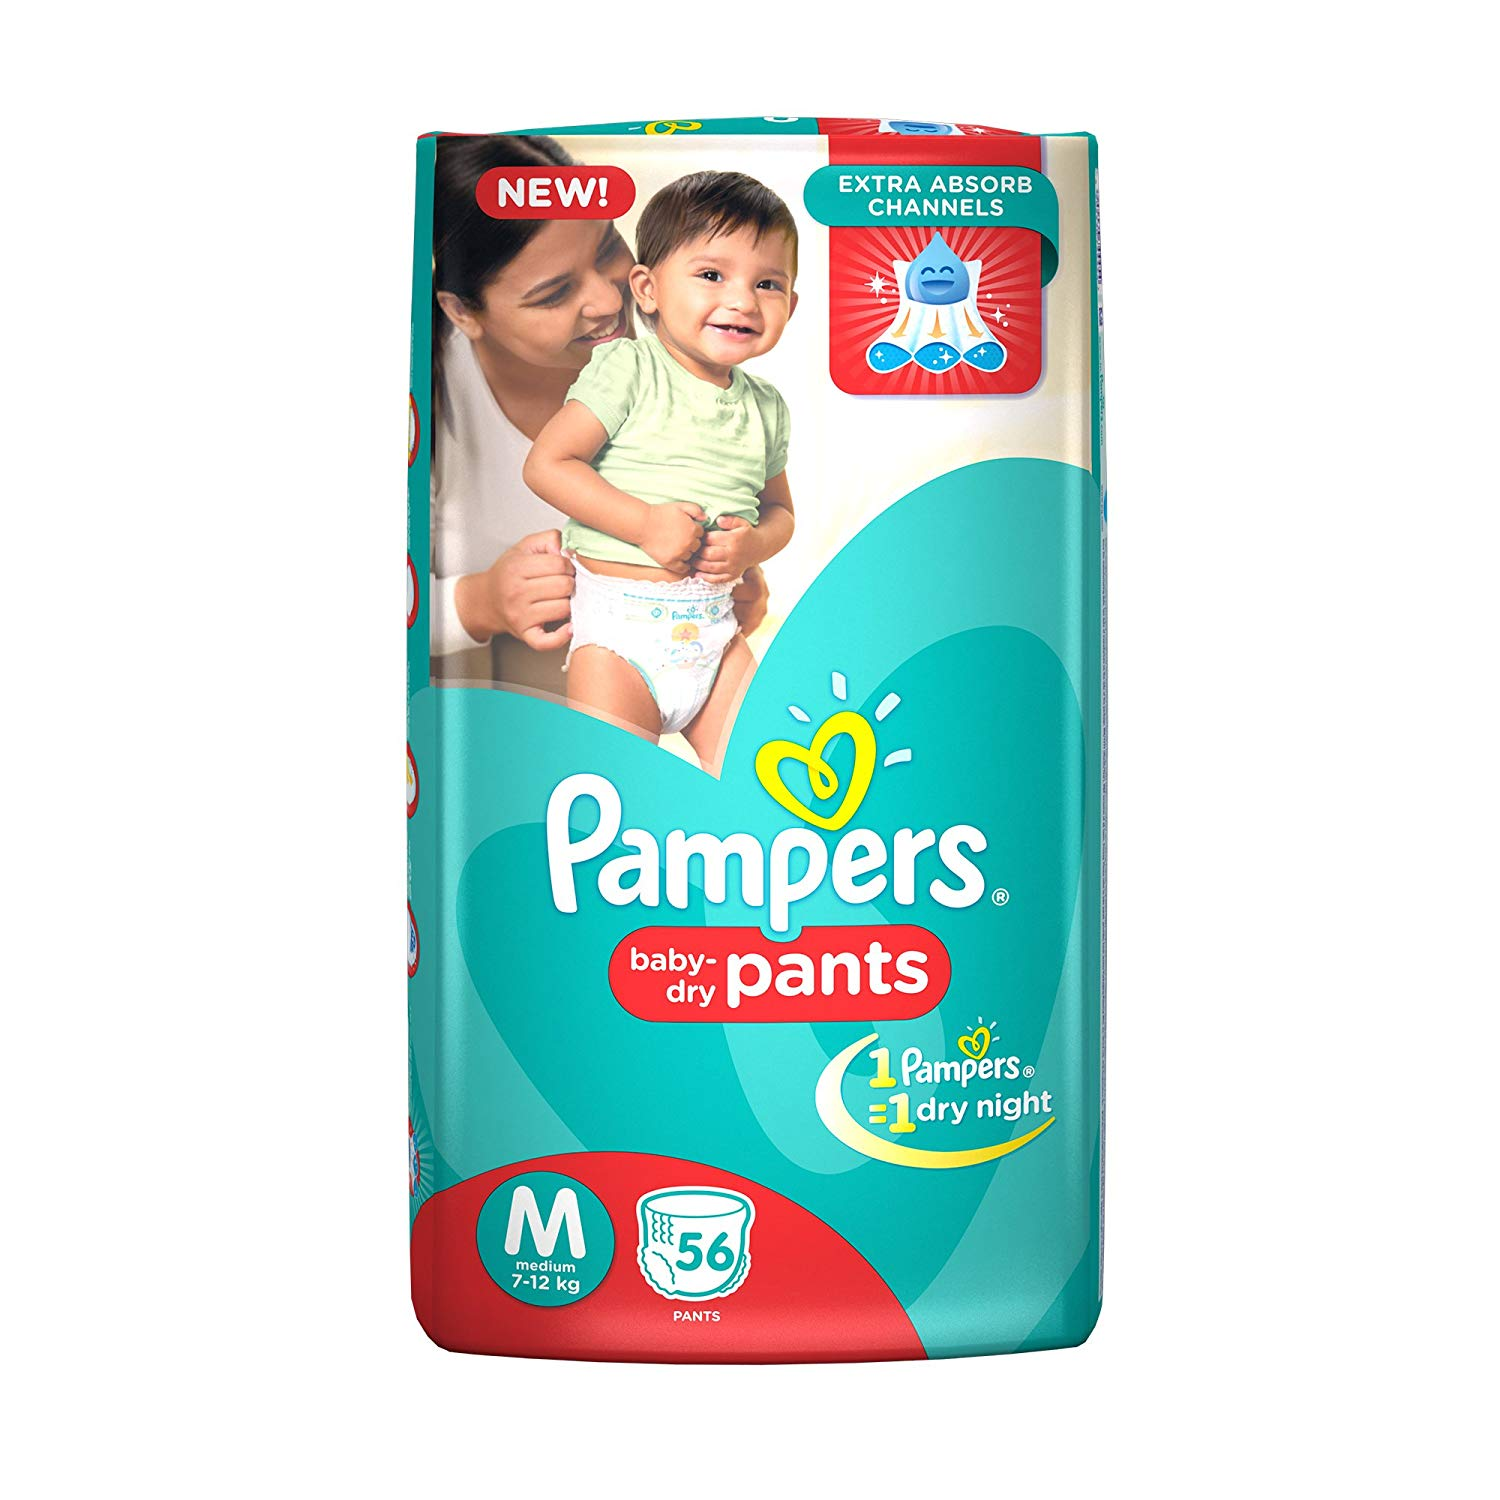 Pampers Medium Size Diapers (56 Count)